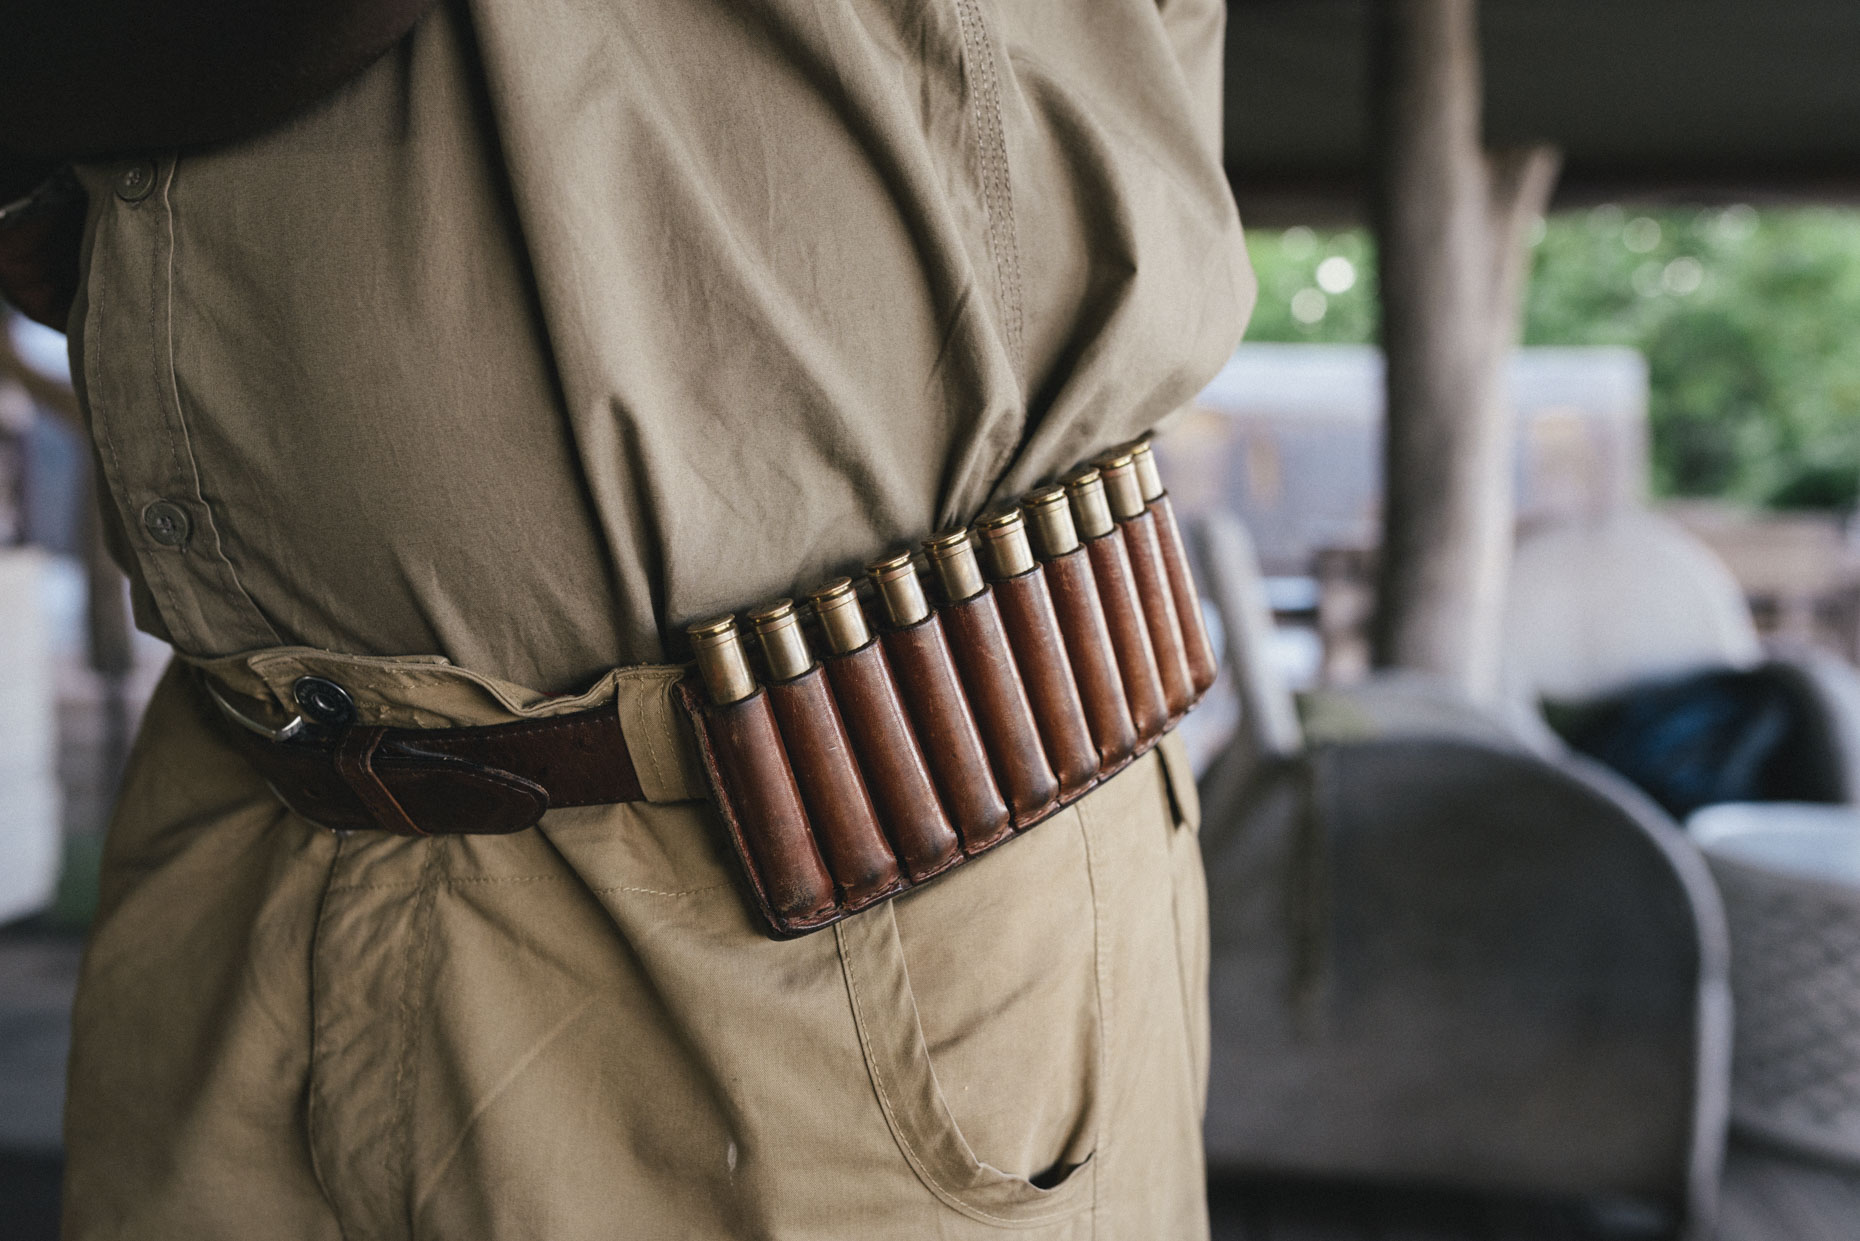 Man safari guide wearing belt with bullet cartridges